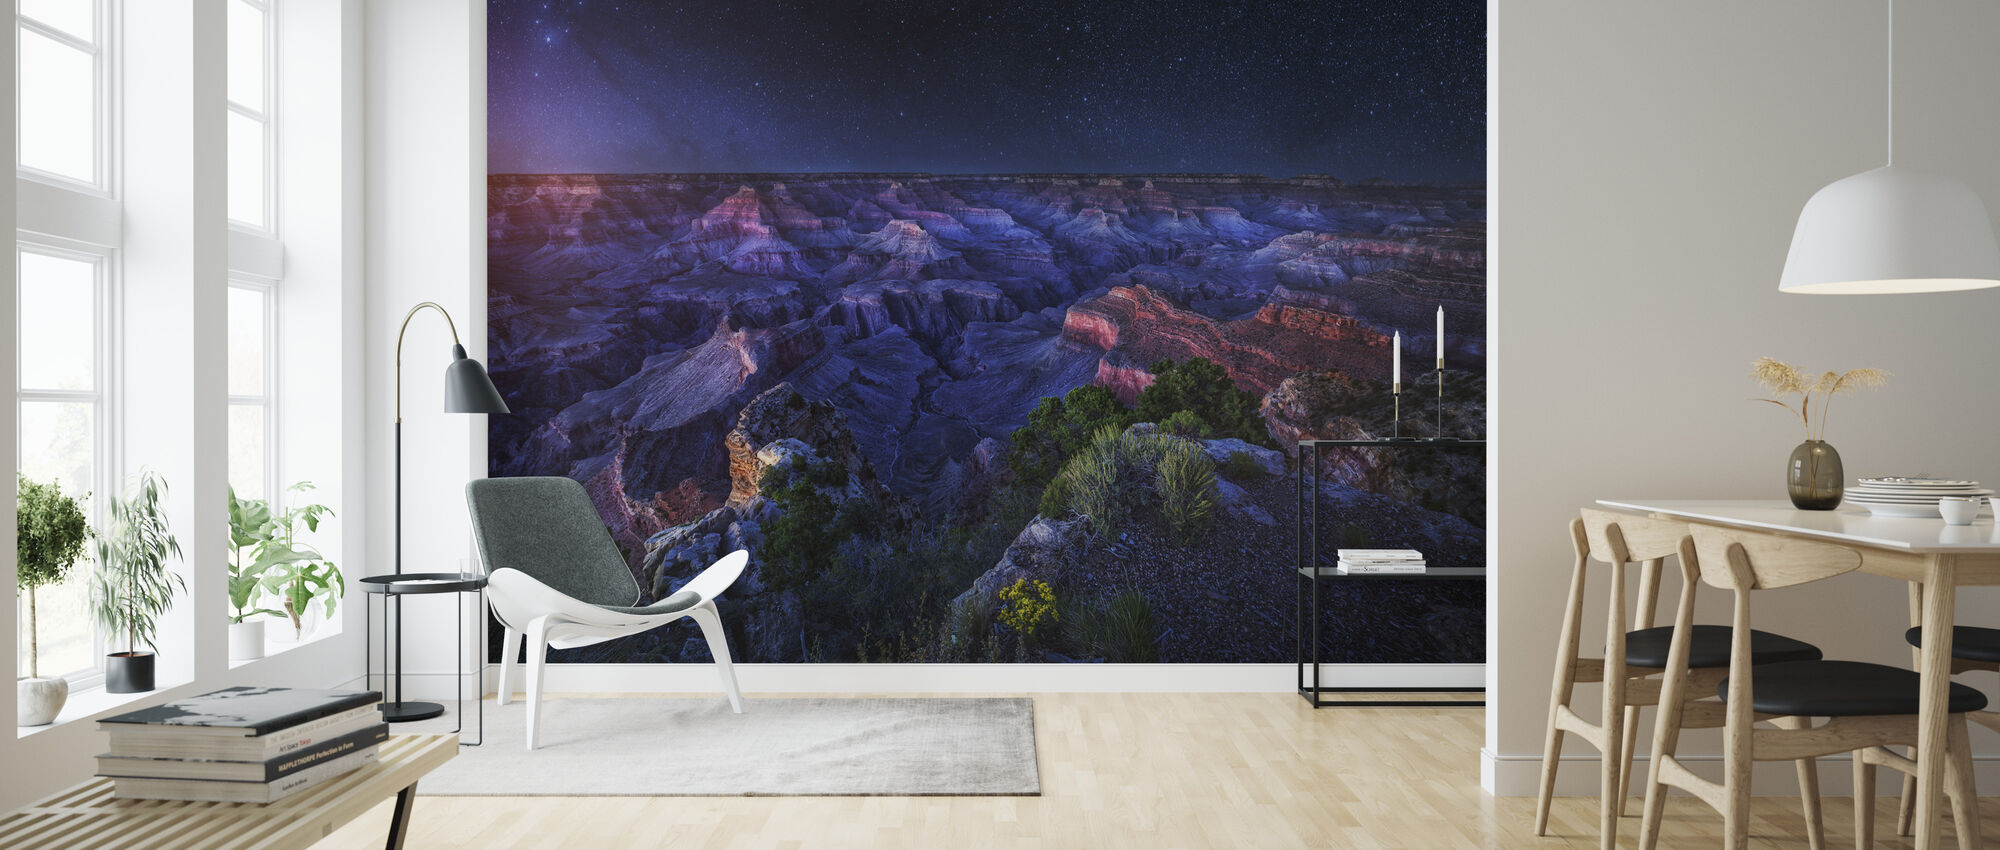 Grand Canyon natt - Tapet - Stue